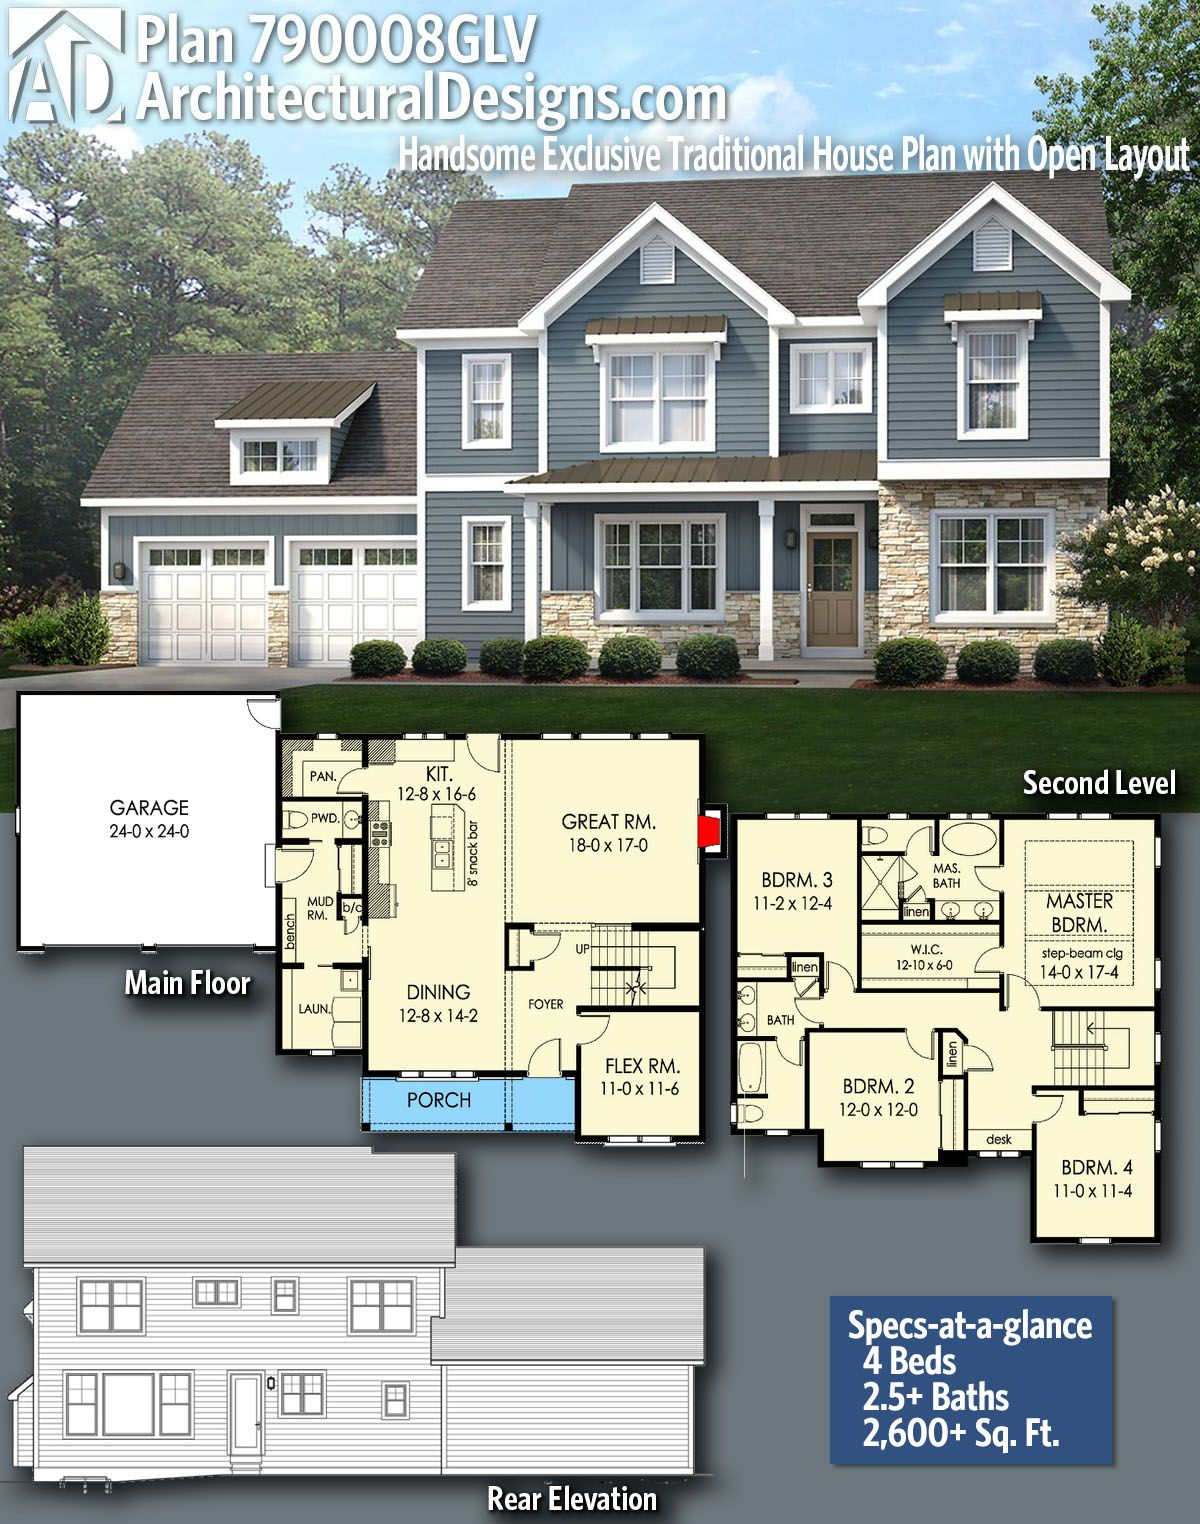 Plan 790008GLV: Handsome Exclusive Traditional House Plan ...